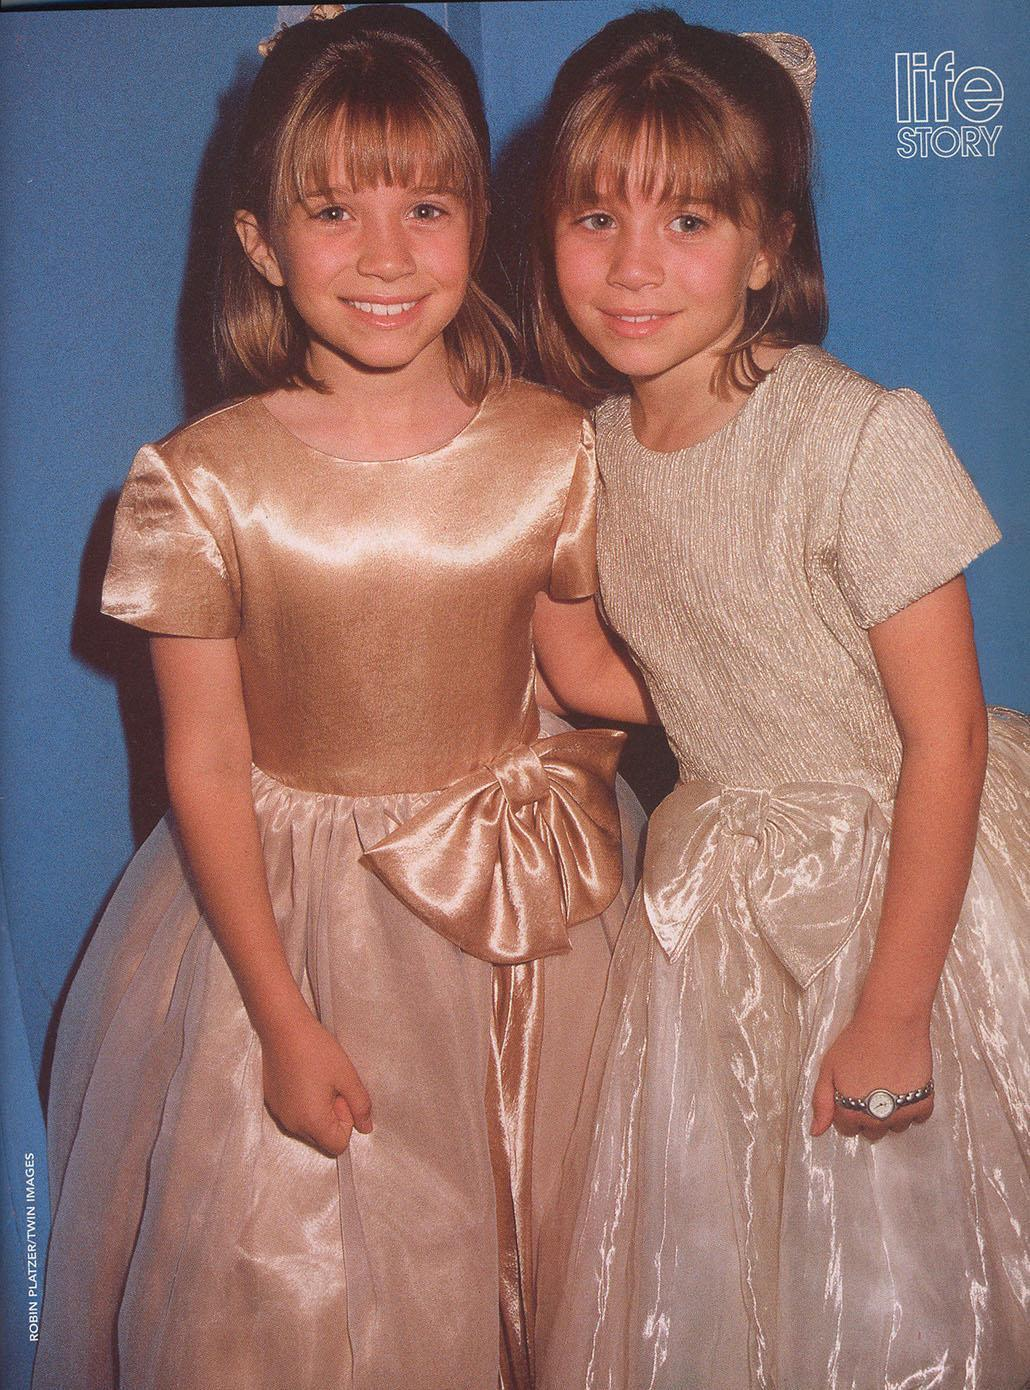 the story of mary kate and ashley Happy birthday, mary-kate and ashley olsen today, our favorite twins turned 28 to celebrate, we took a trip down memory lane and counted down 28 facts about the famous fraternal faces that you.